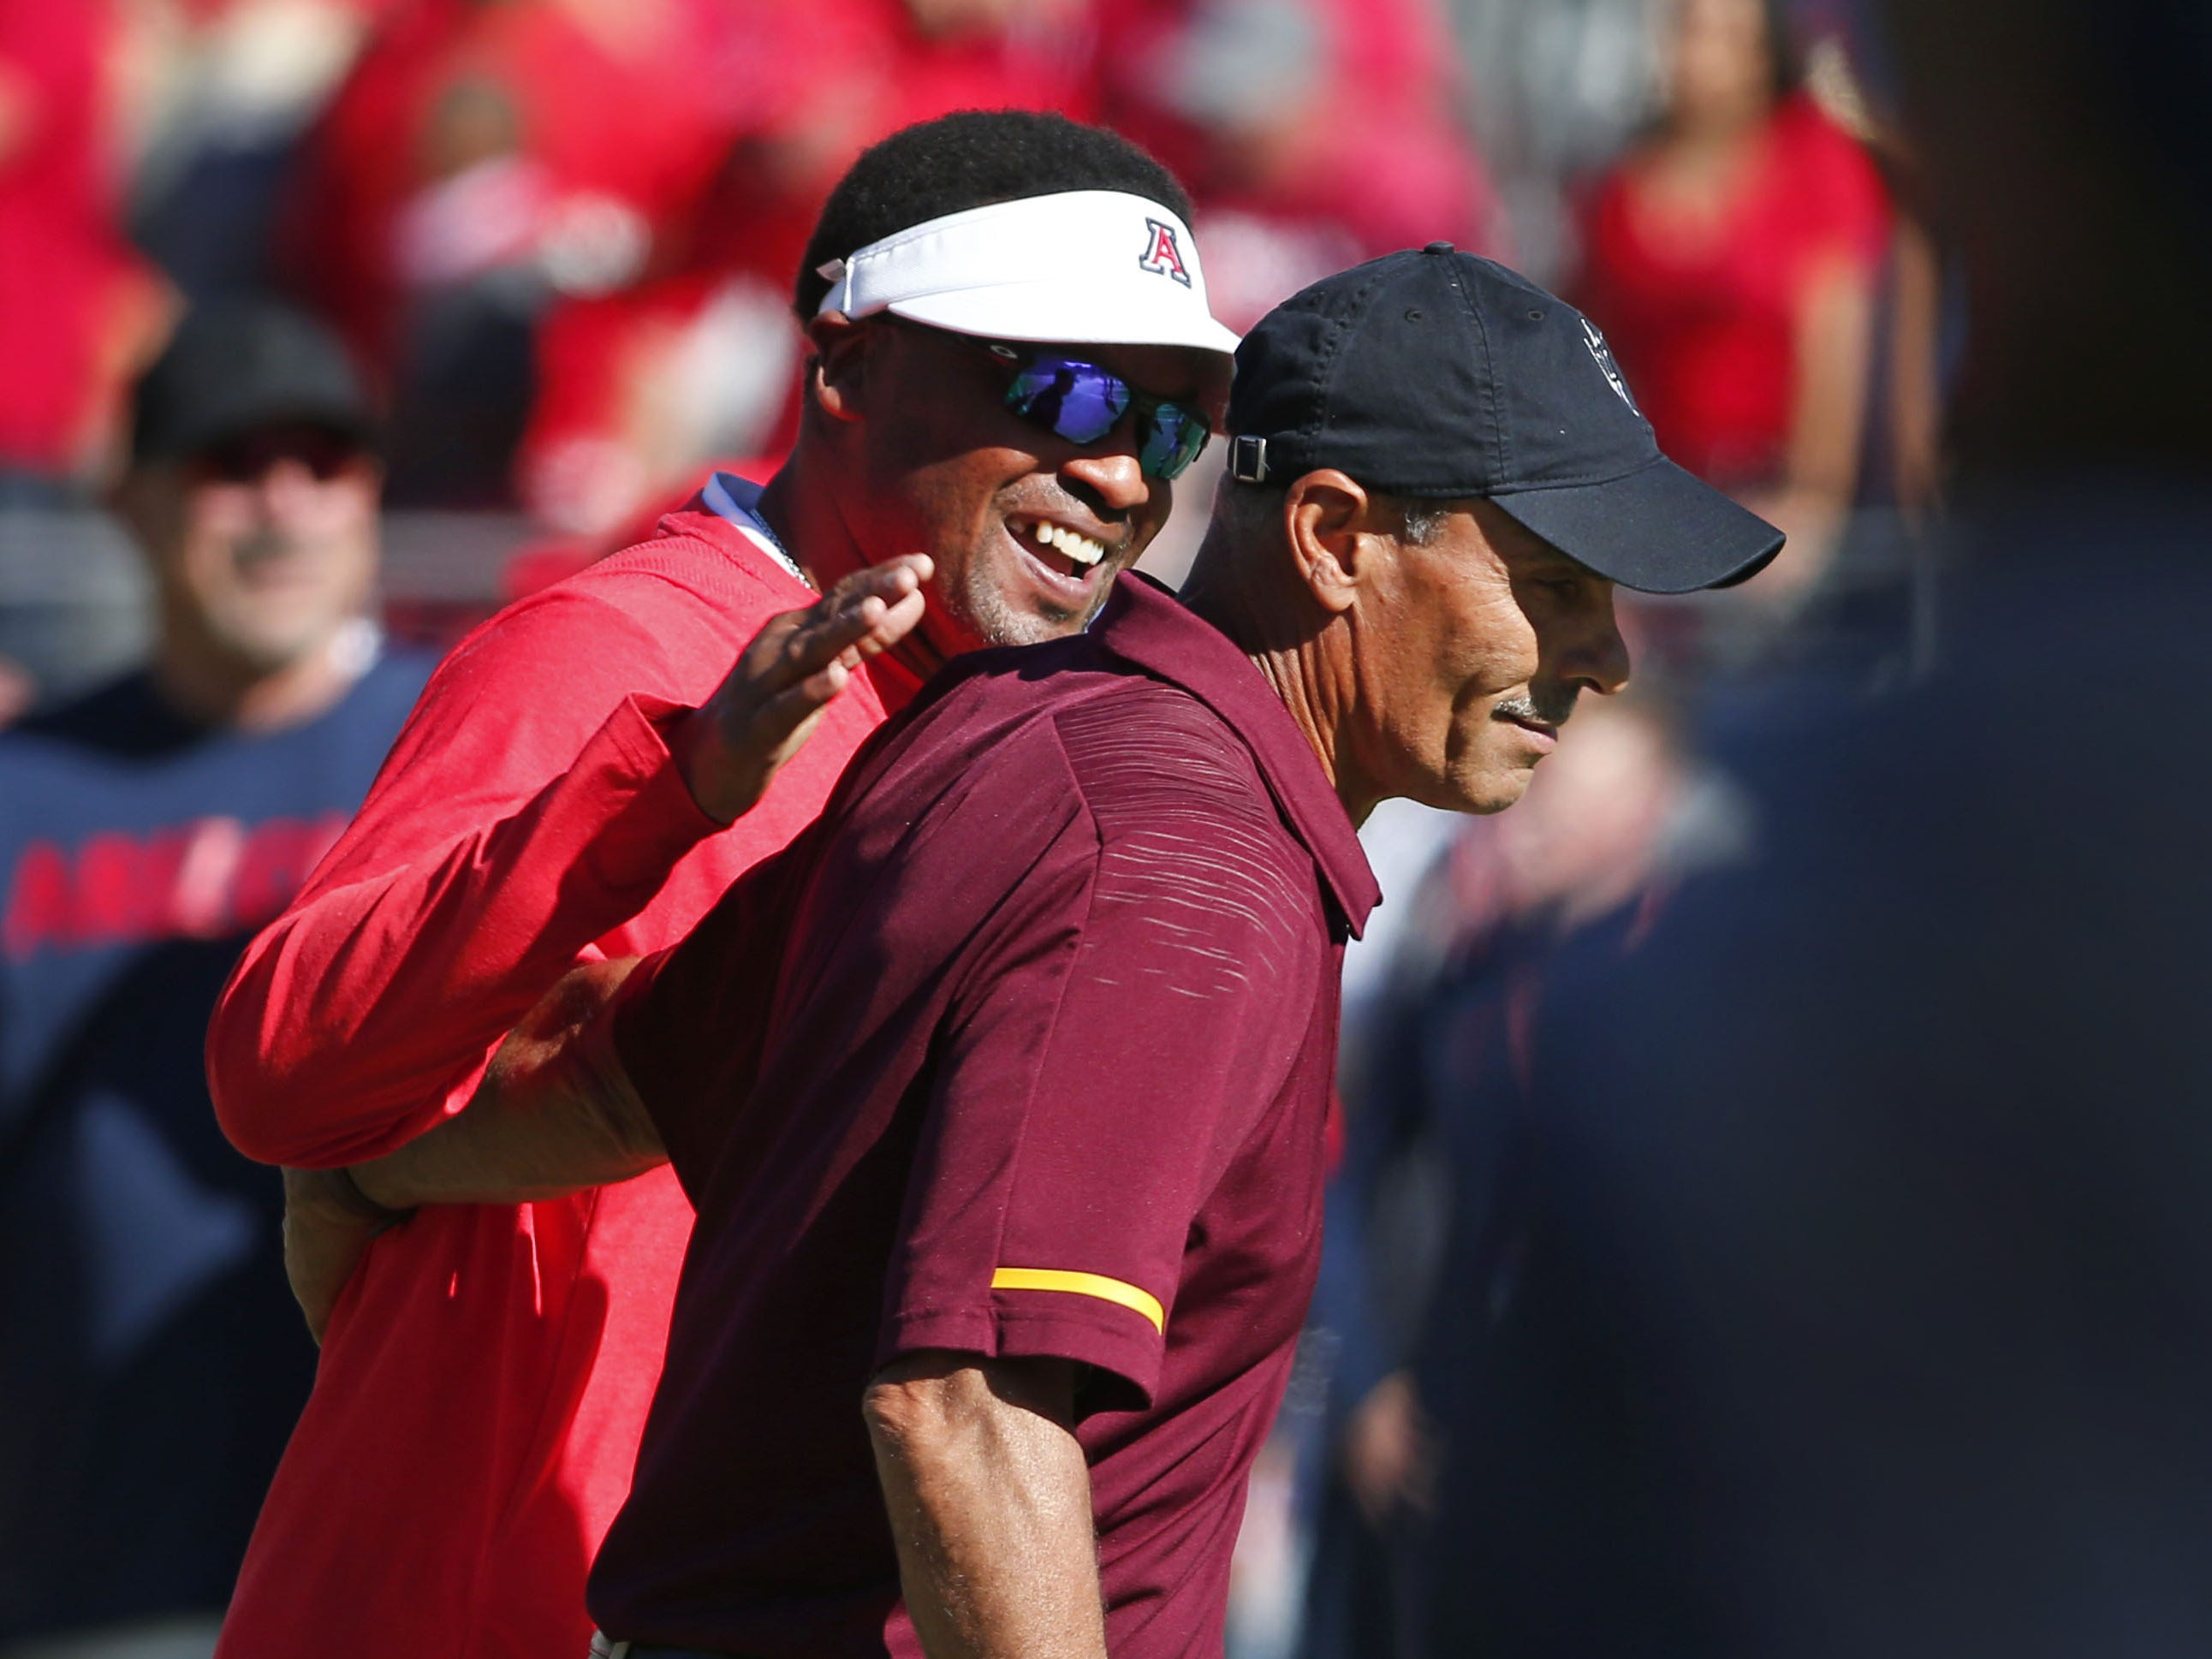 Arizona Wildcats head coach Kevin Sumlin shares a laugh with Arizona State Sun Devils head coach Herm Edwards before the Territorial Cup football game at Arizona Stadium in Tucson on November 24.